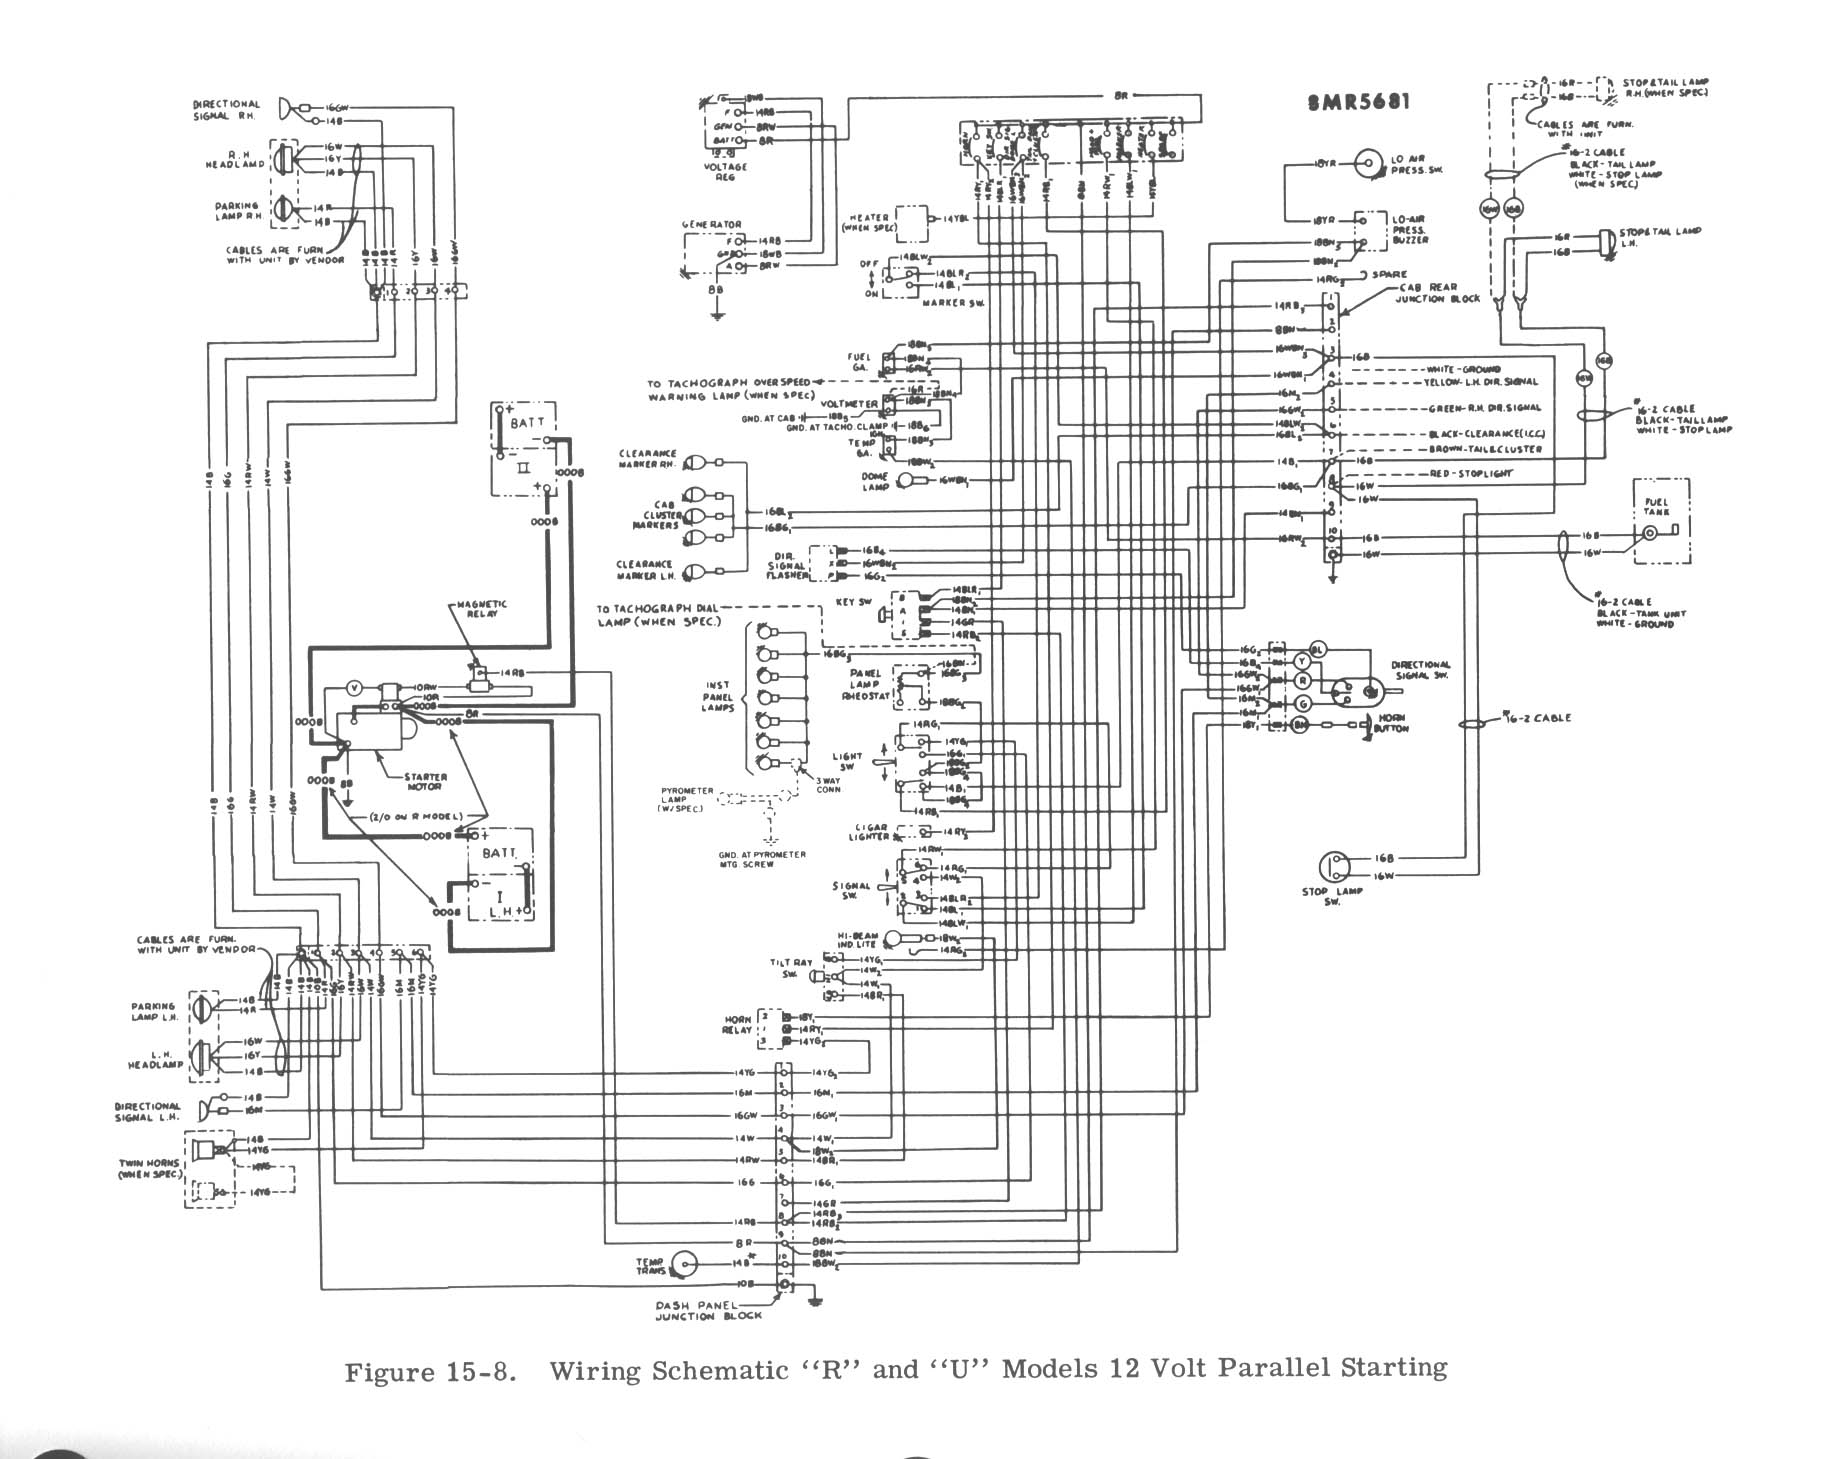 diagram] 2000 mack ch613 wiring diagram full version hd quality wiring  diagram - 6diagrams.jeanpierresauser.fr  box diagram